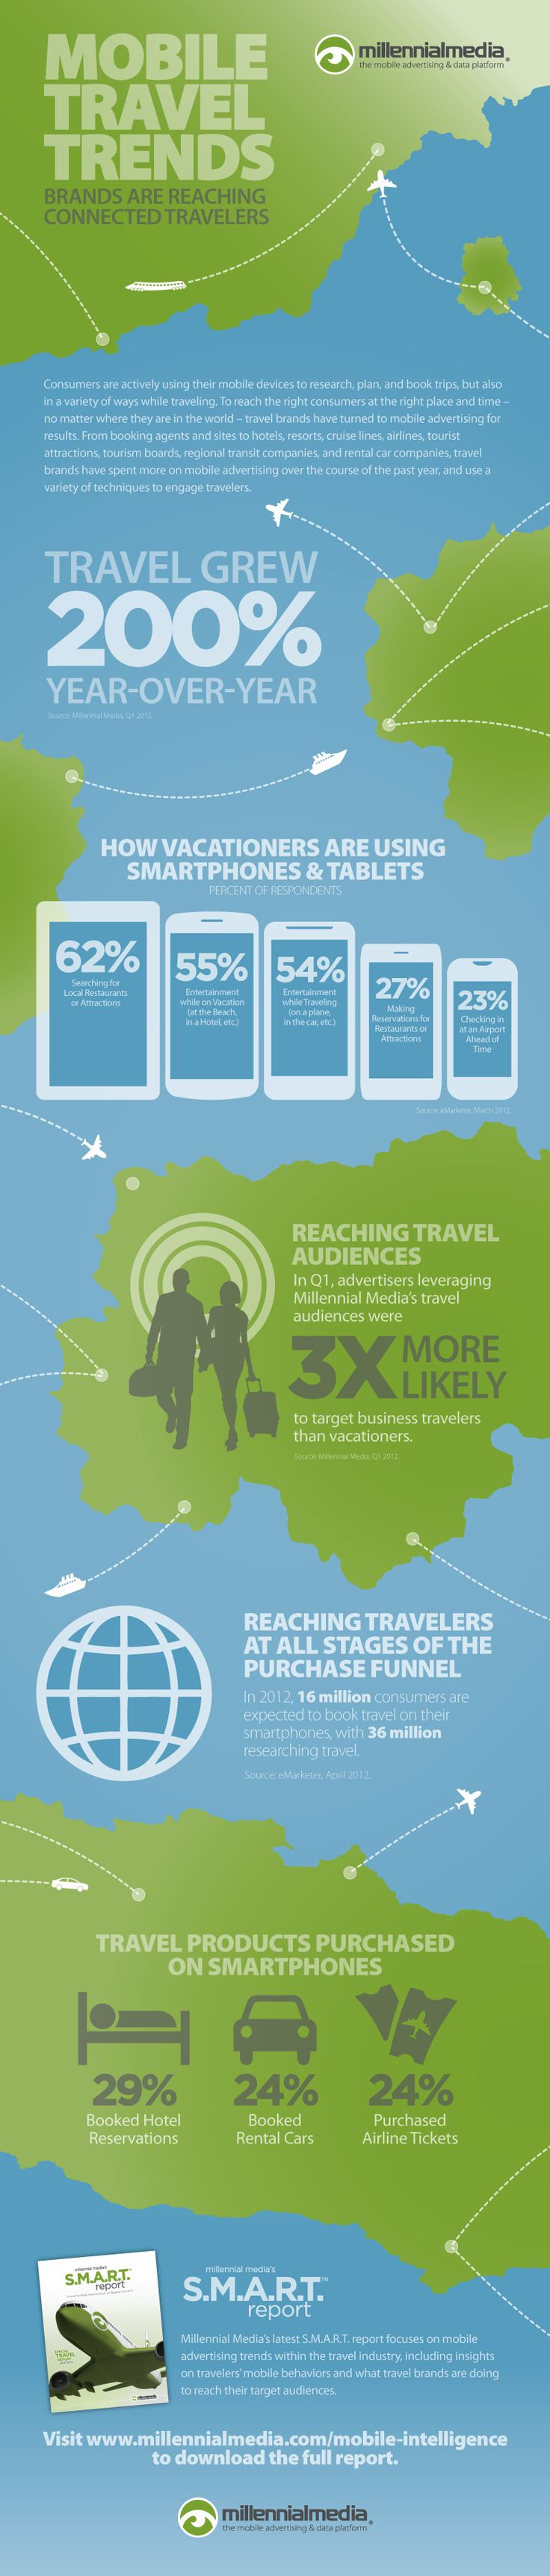 Mobile travel trends: how savvy brands are reaching connected travelers